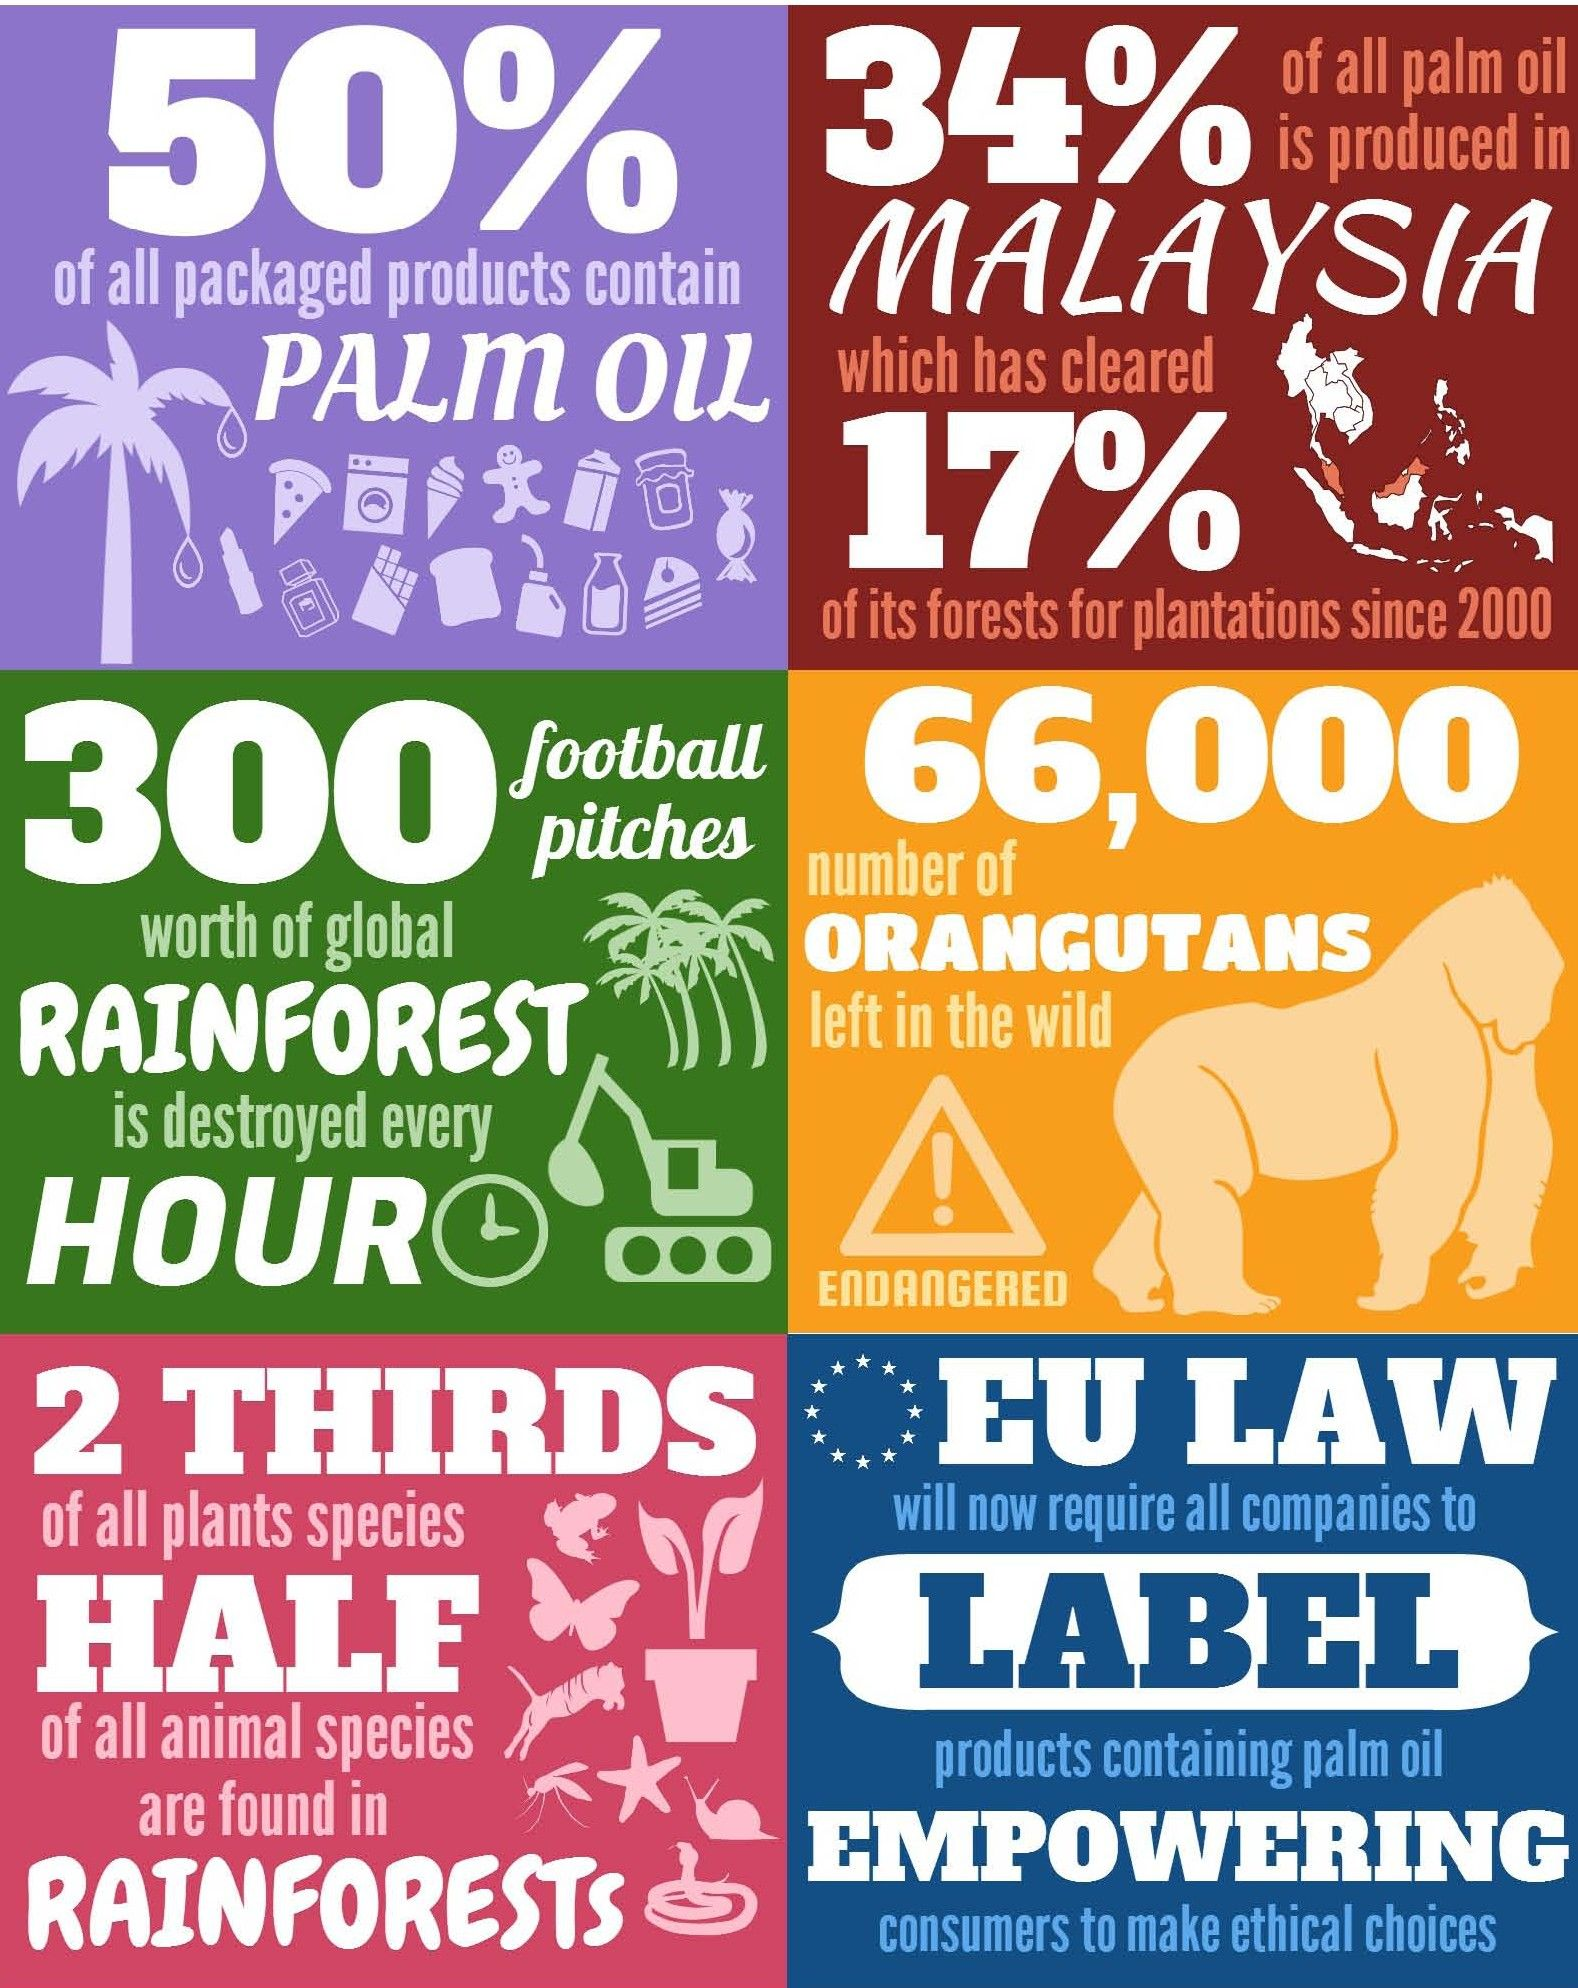 Rainforest Conservation Facts | Save the Rainforest | Pinterest ...